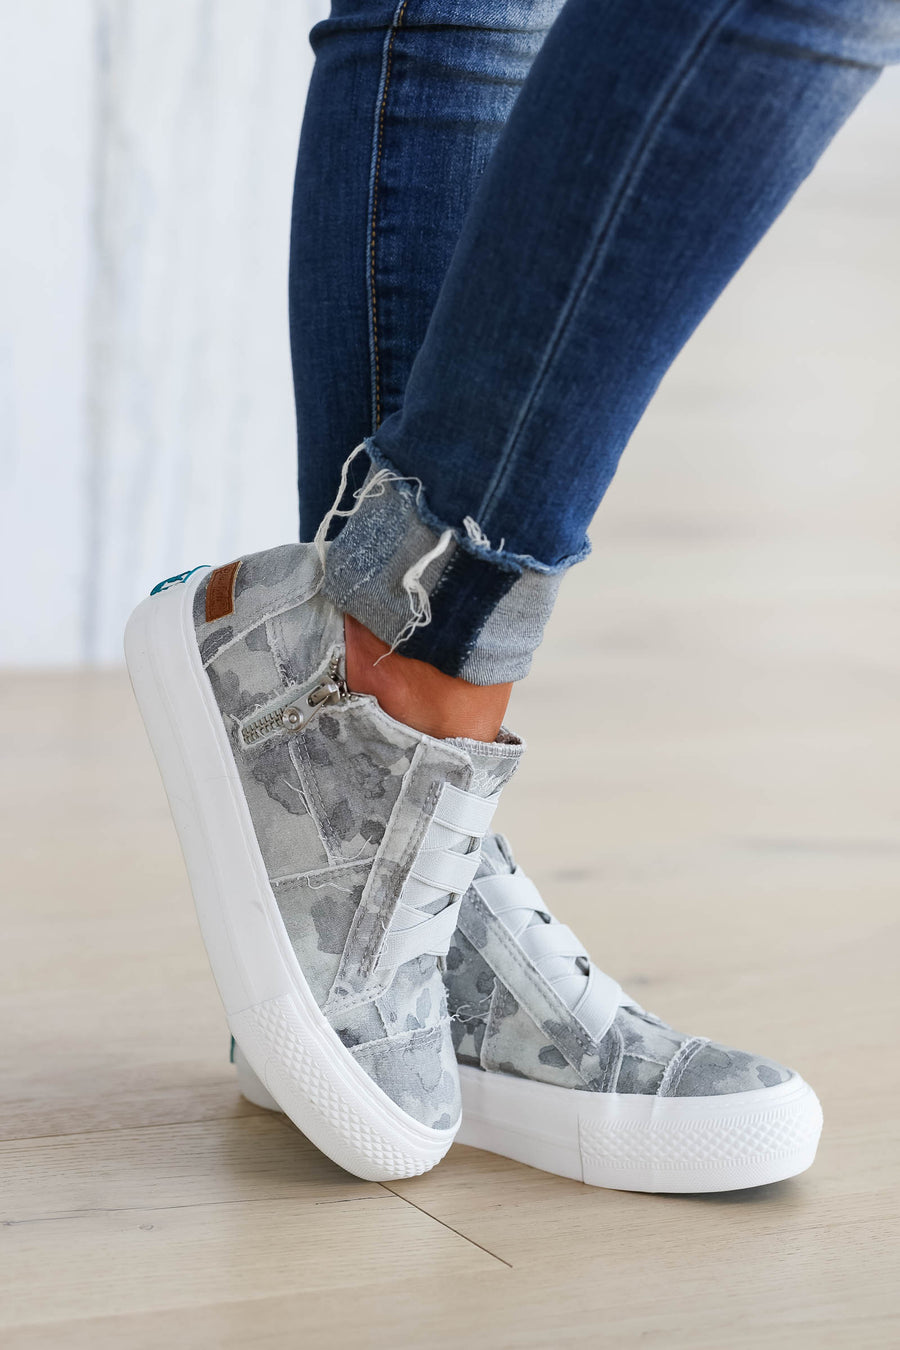 Walk That Way Wedge Sneaker - Grey Camo closet candy women's trendy wedge sneakers sitting